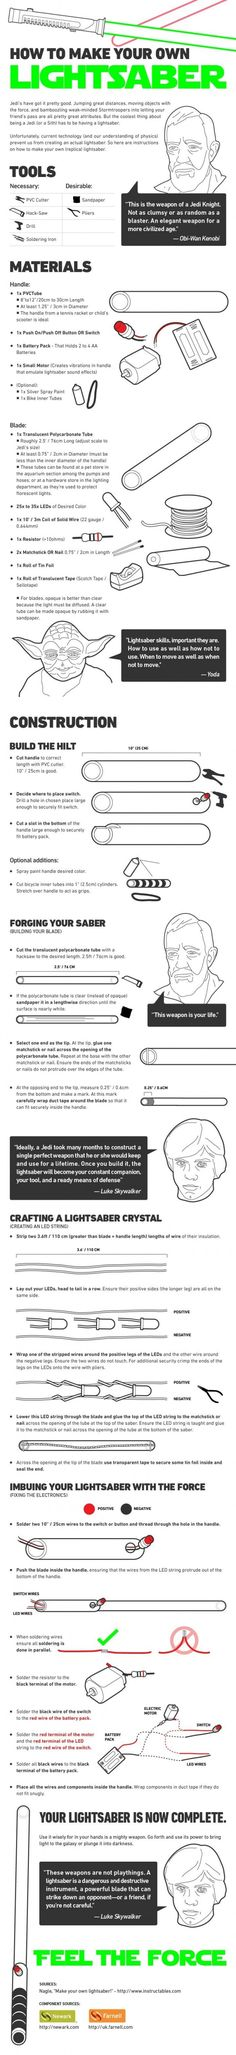 Infographic Teaches You to Build a Lightsaber